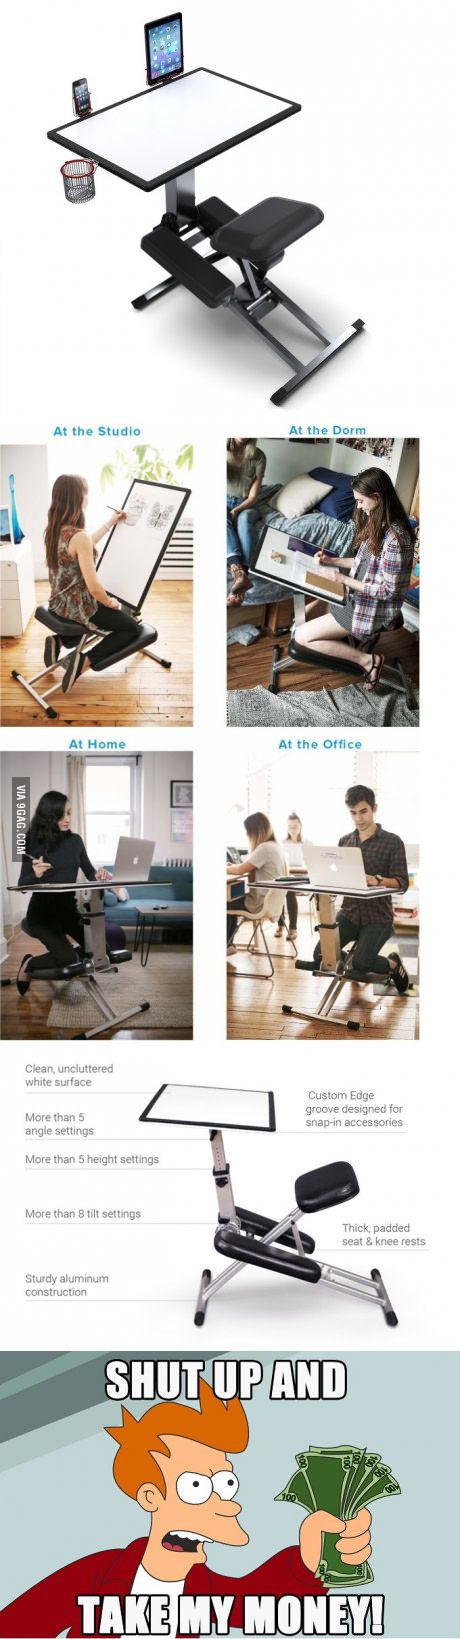 New portable desk design, just wow!